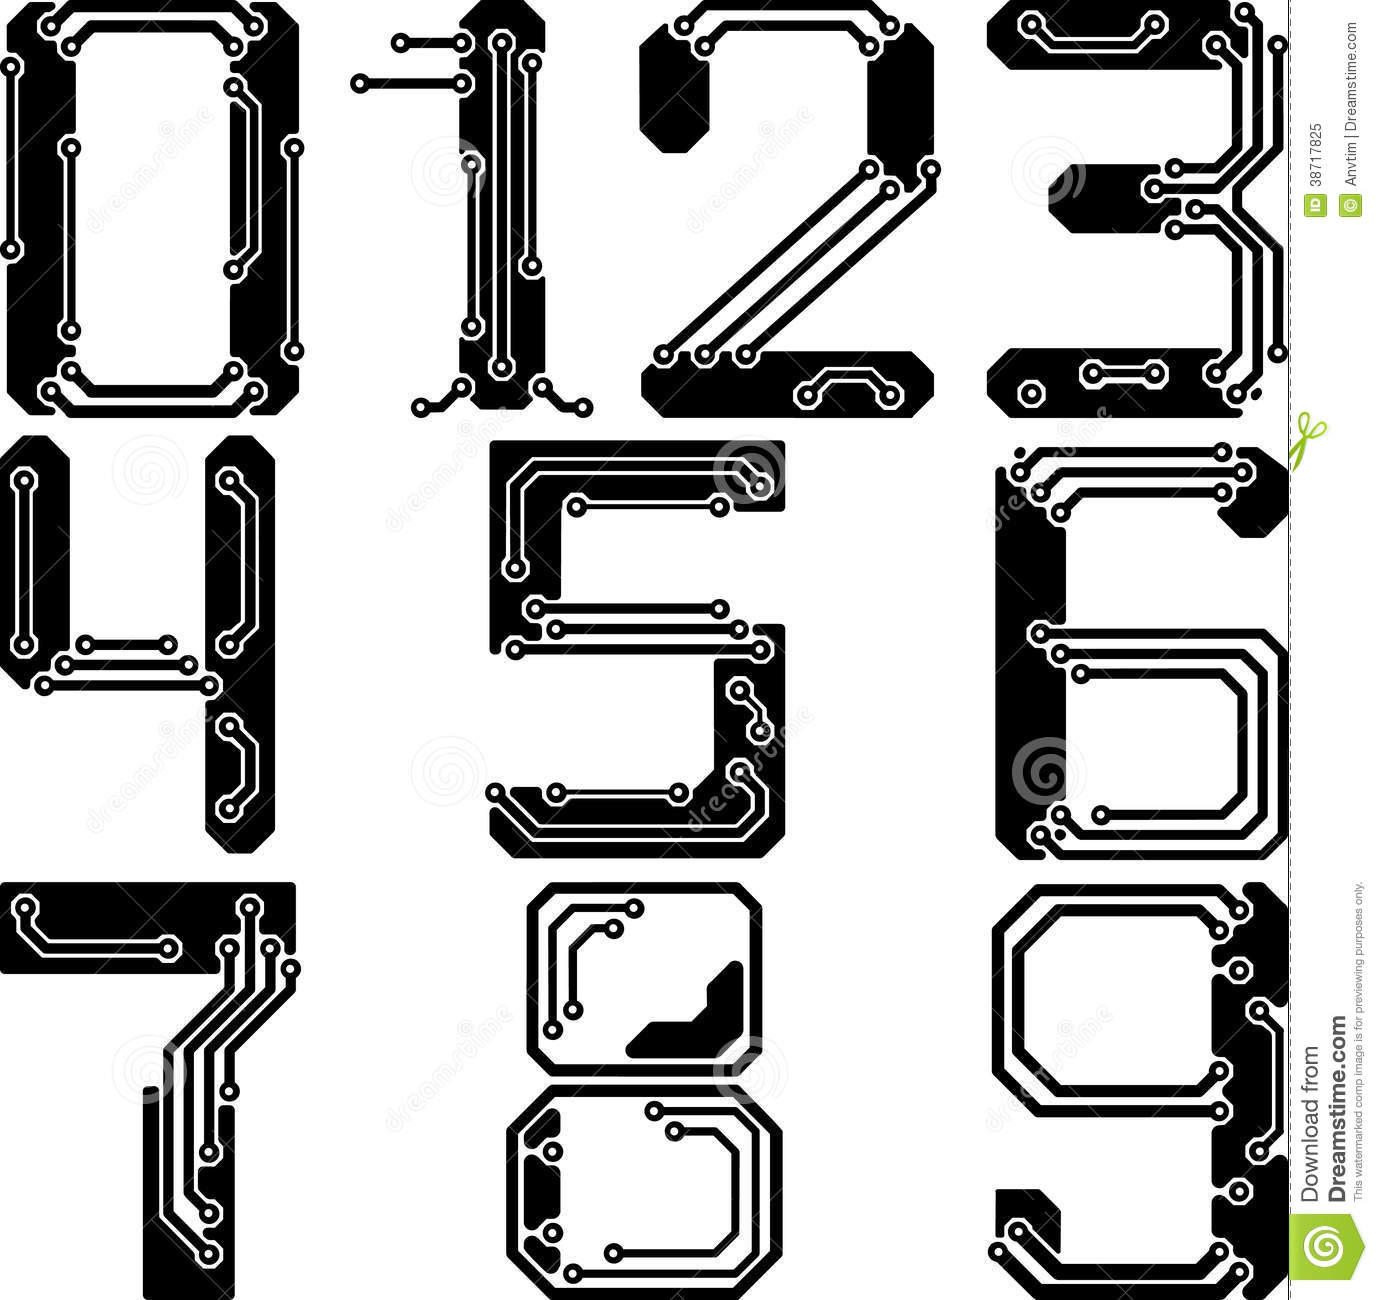 Stylish Pcb Electric Wires Numbers Stock Vector